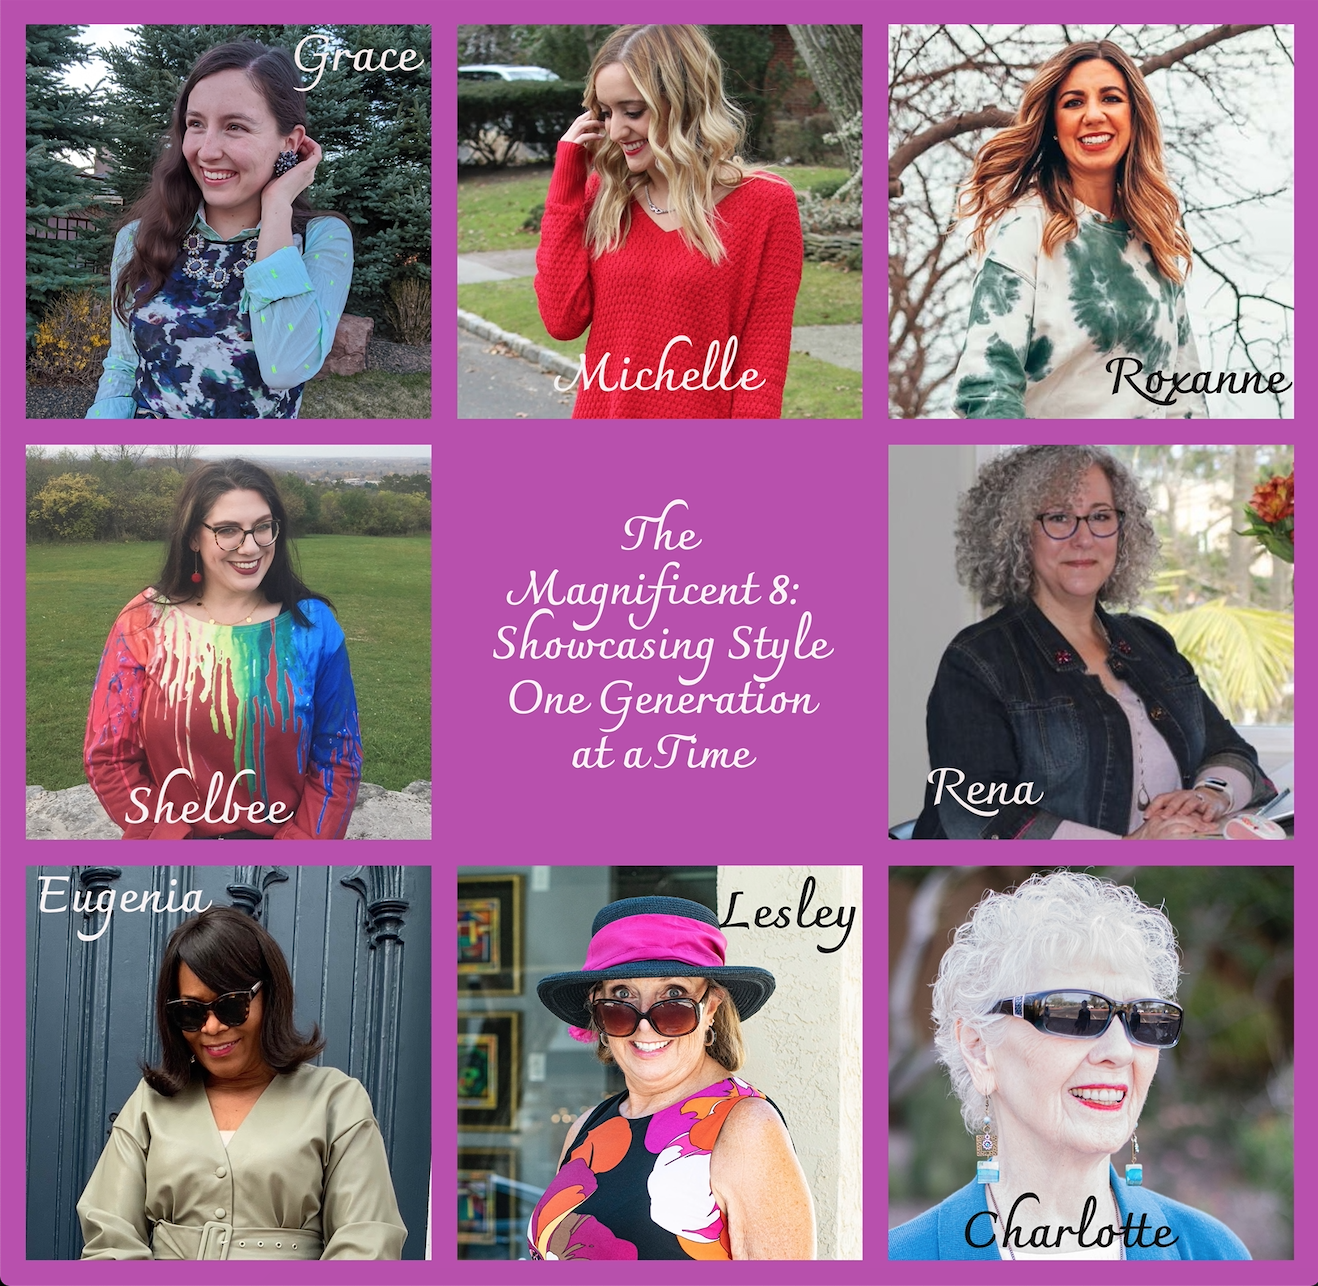 Floral Clothing by popular Chicago fashion blog, Glass of Glam: collage image of the magnificent 8 women.